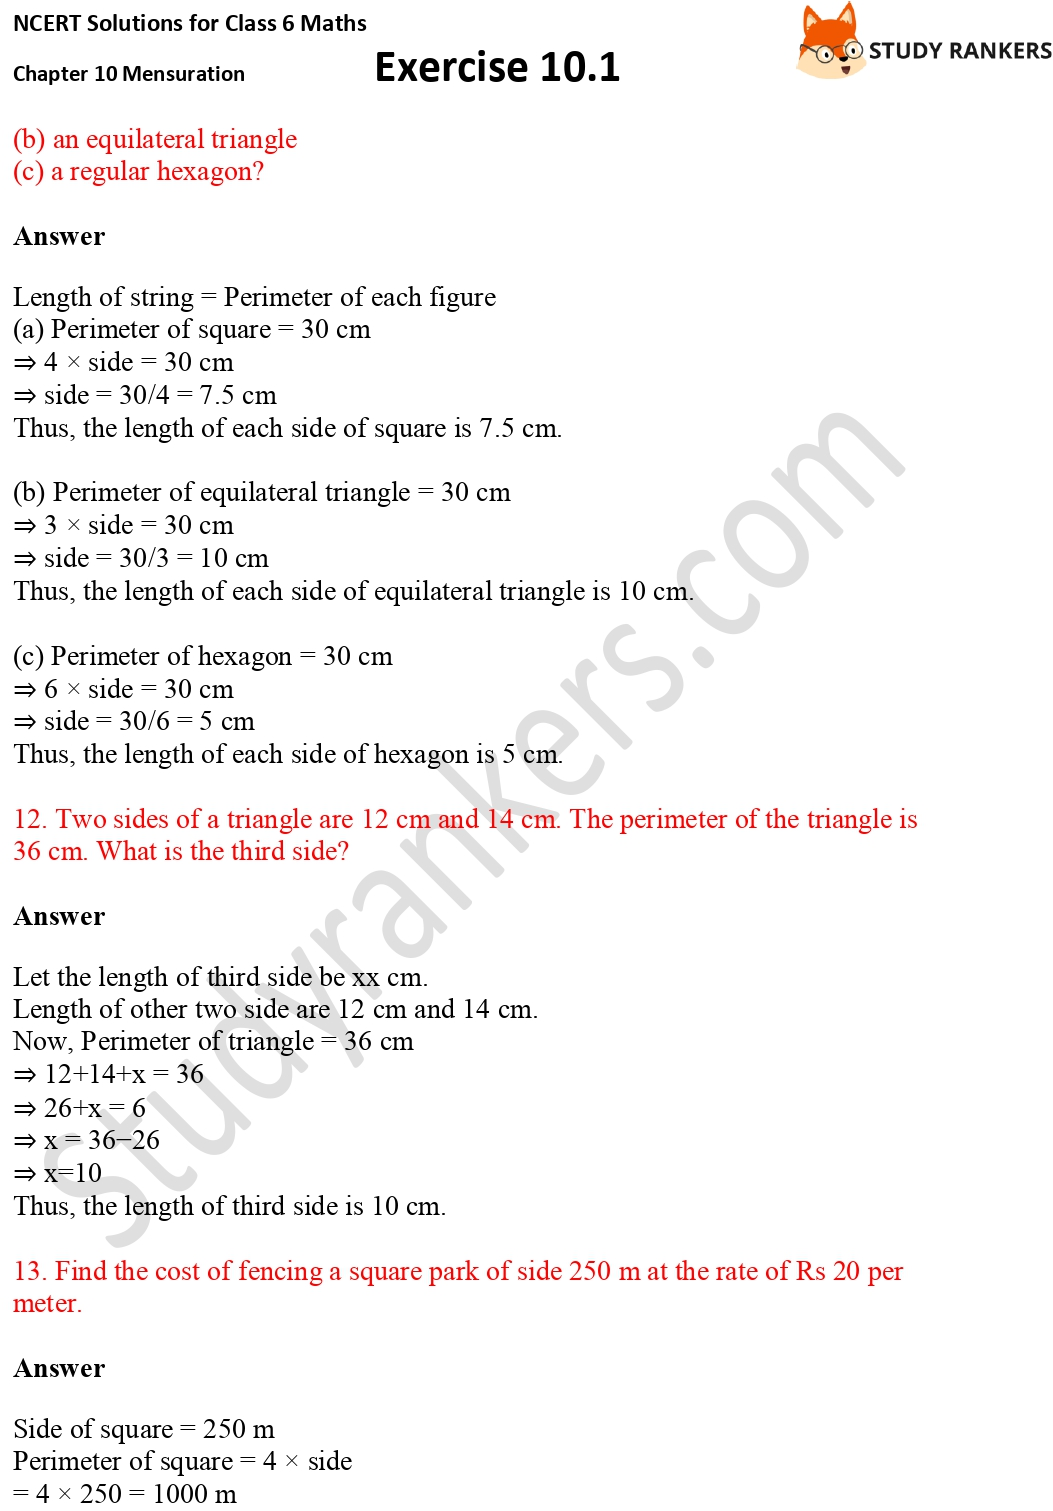 NCERT Solutions for Class 6 Maths Chapter 10 Mensuration Exercise 10.1 Part 5